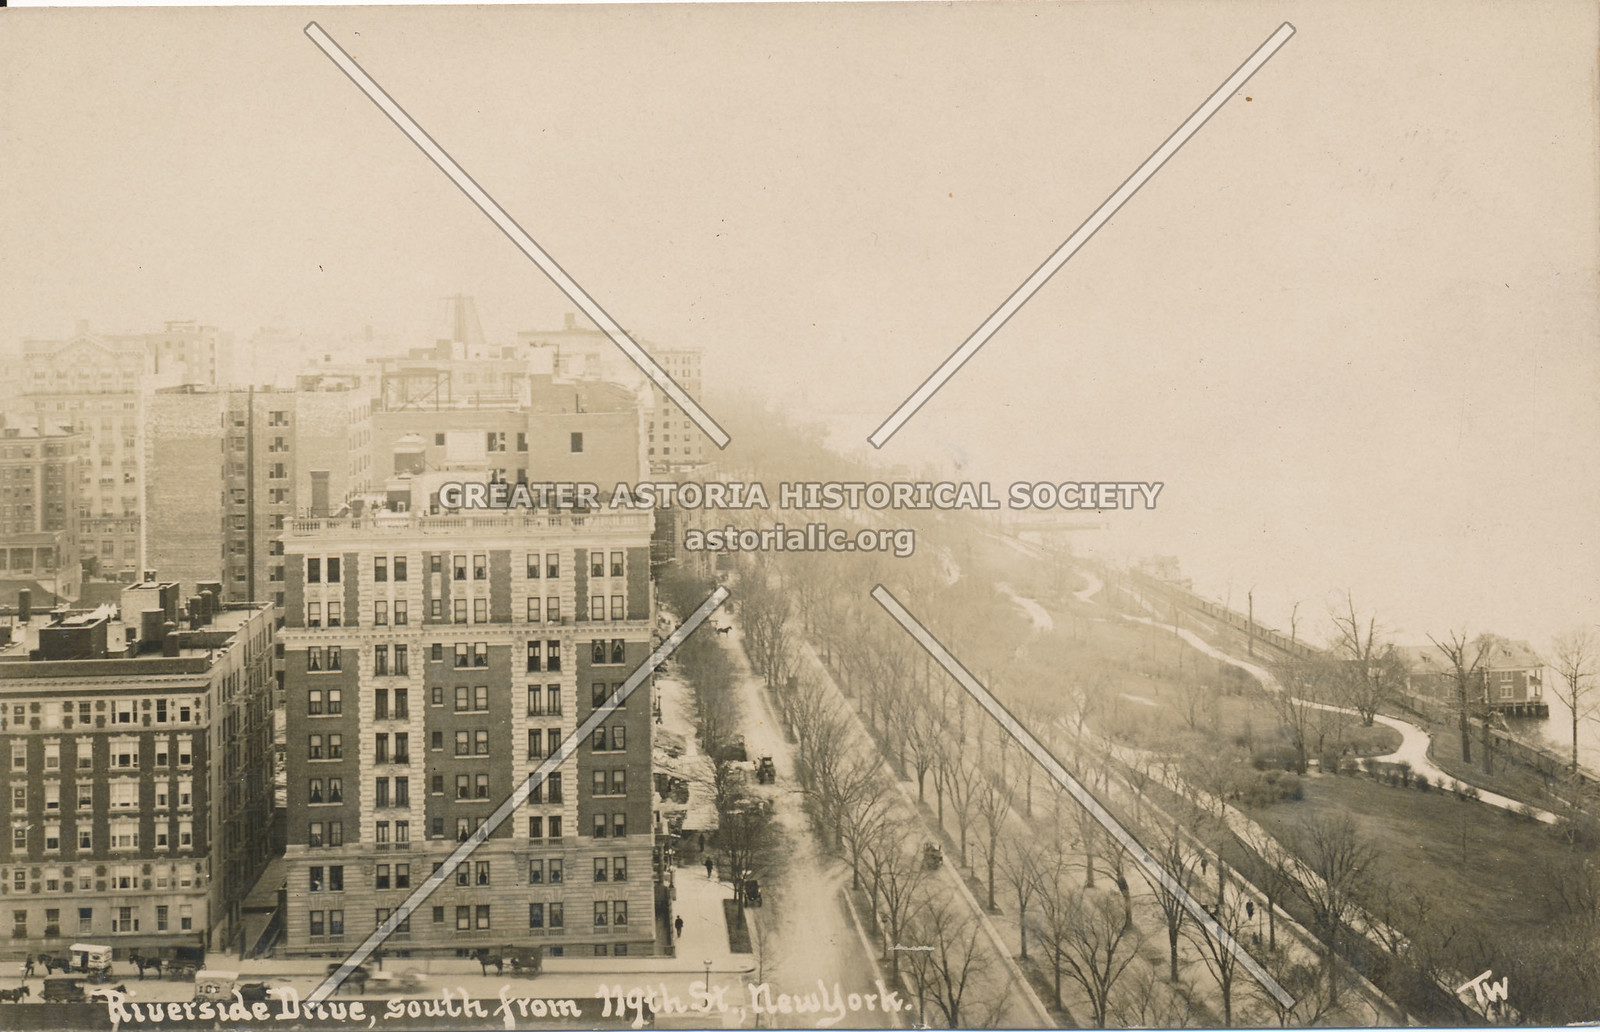 Riverside Drive, South from 119th St., N.Y.